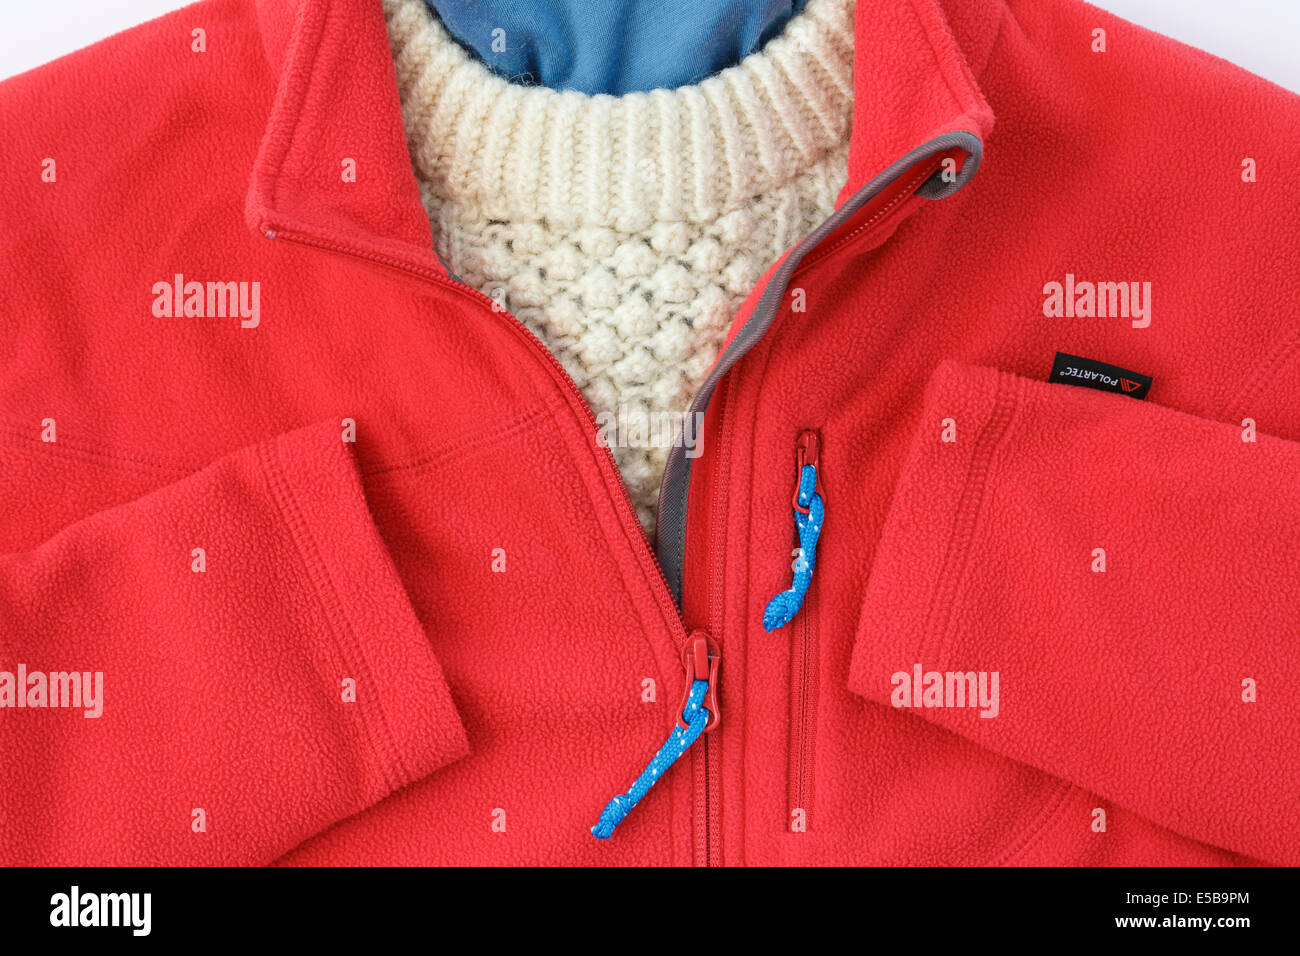 Red Polartec fleece jacket with zip open over an Arran sweater for warm winter clothing. England, UK, Britain - Stock Image